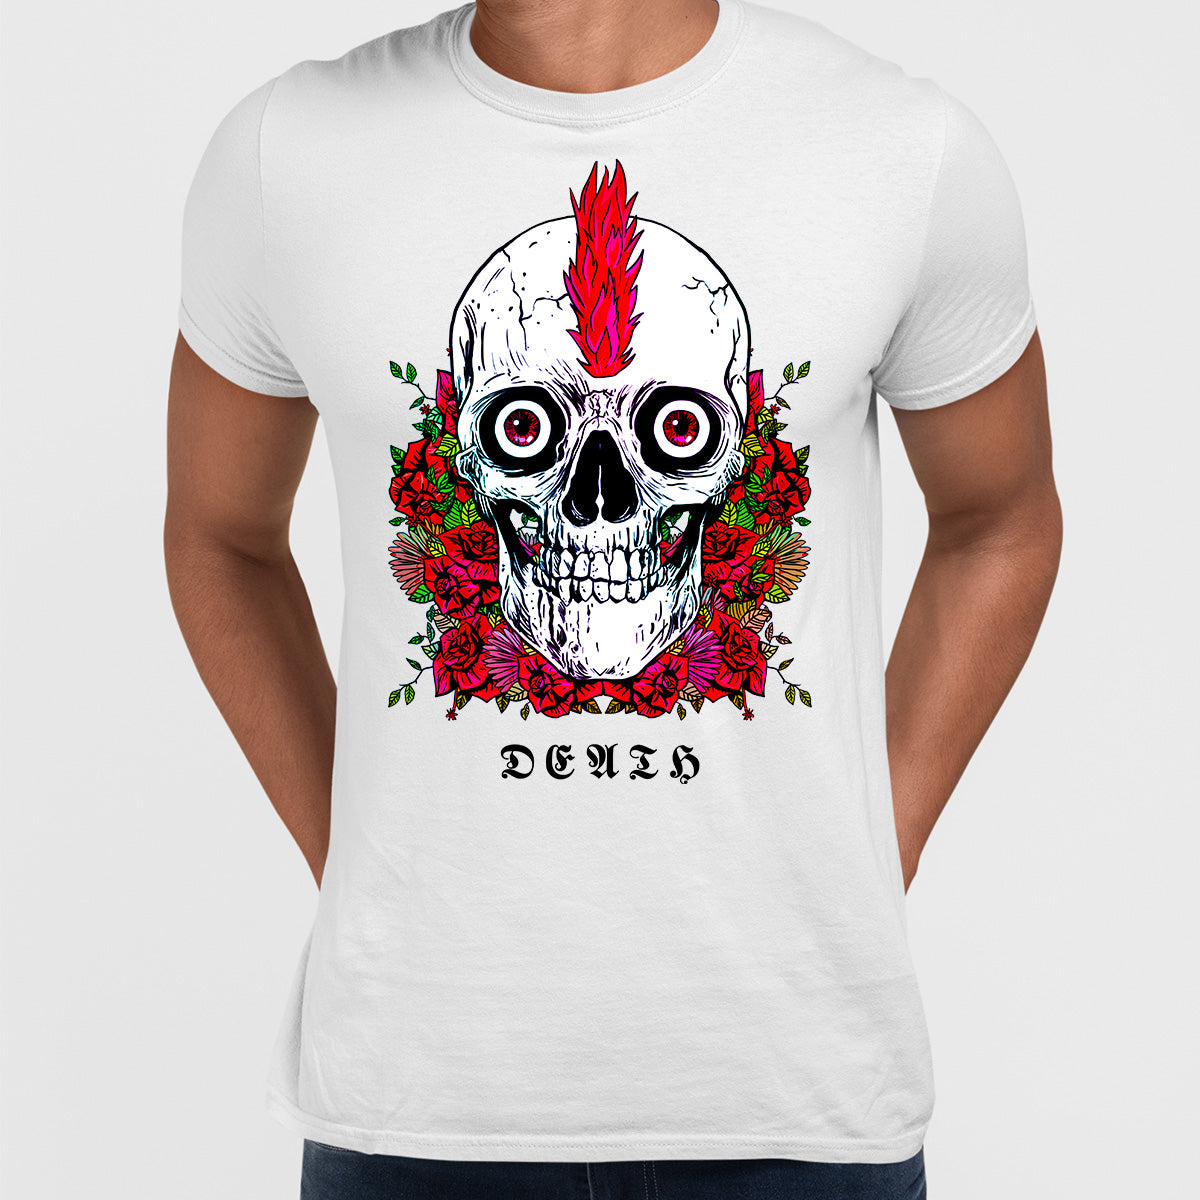 Punk Skull With Roses and Red Hair T-shirts